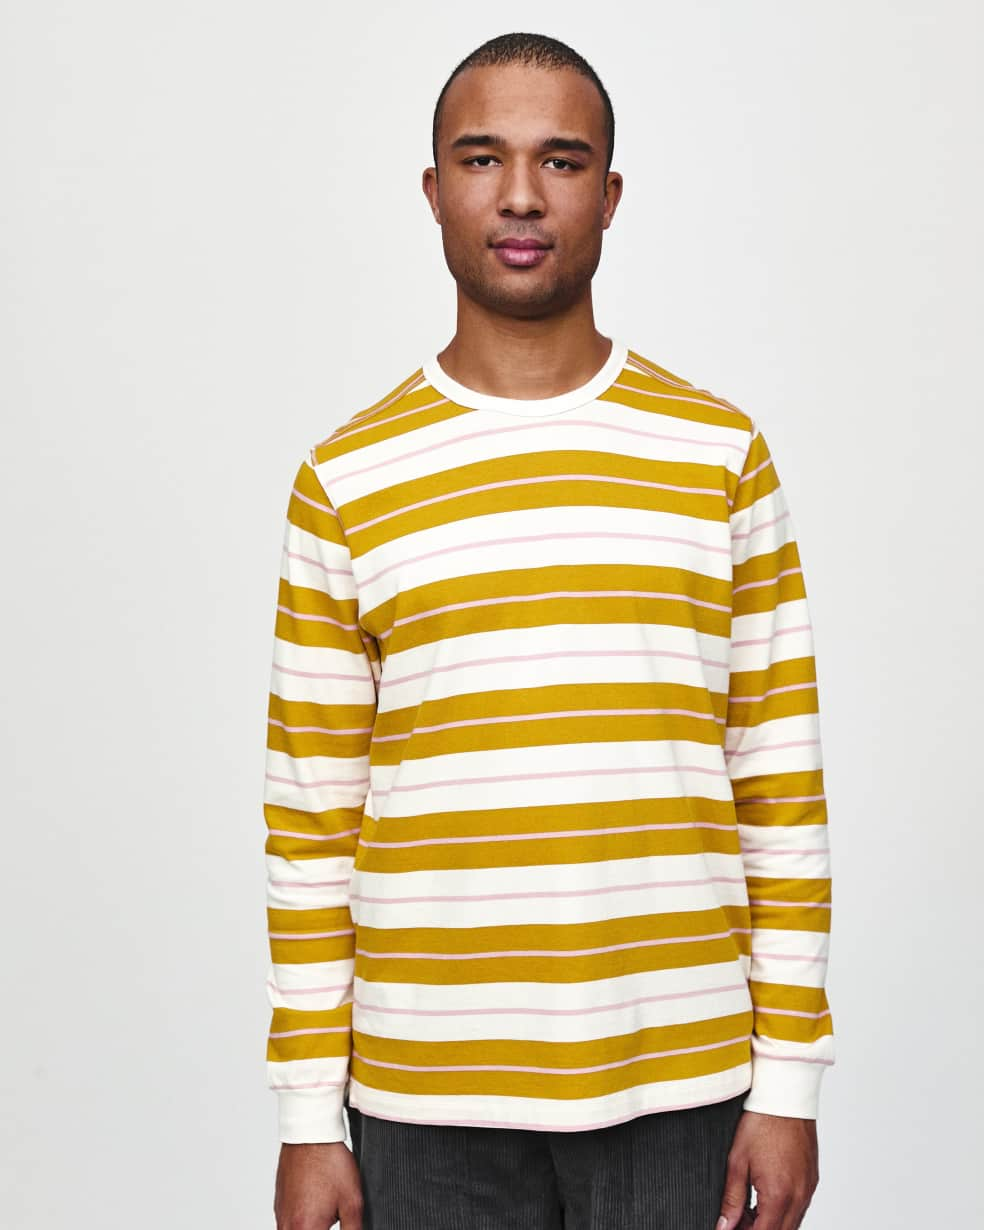 Pop Trading Company Striped Long Sleeve T-Shirt - Spruce Yellow / Off White | Longsleeve by Pop Trading Company 3